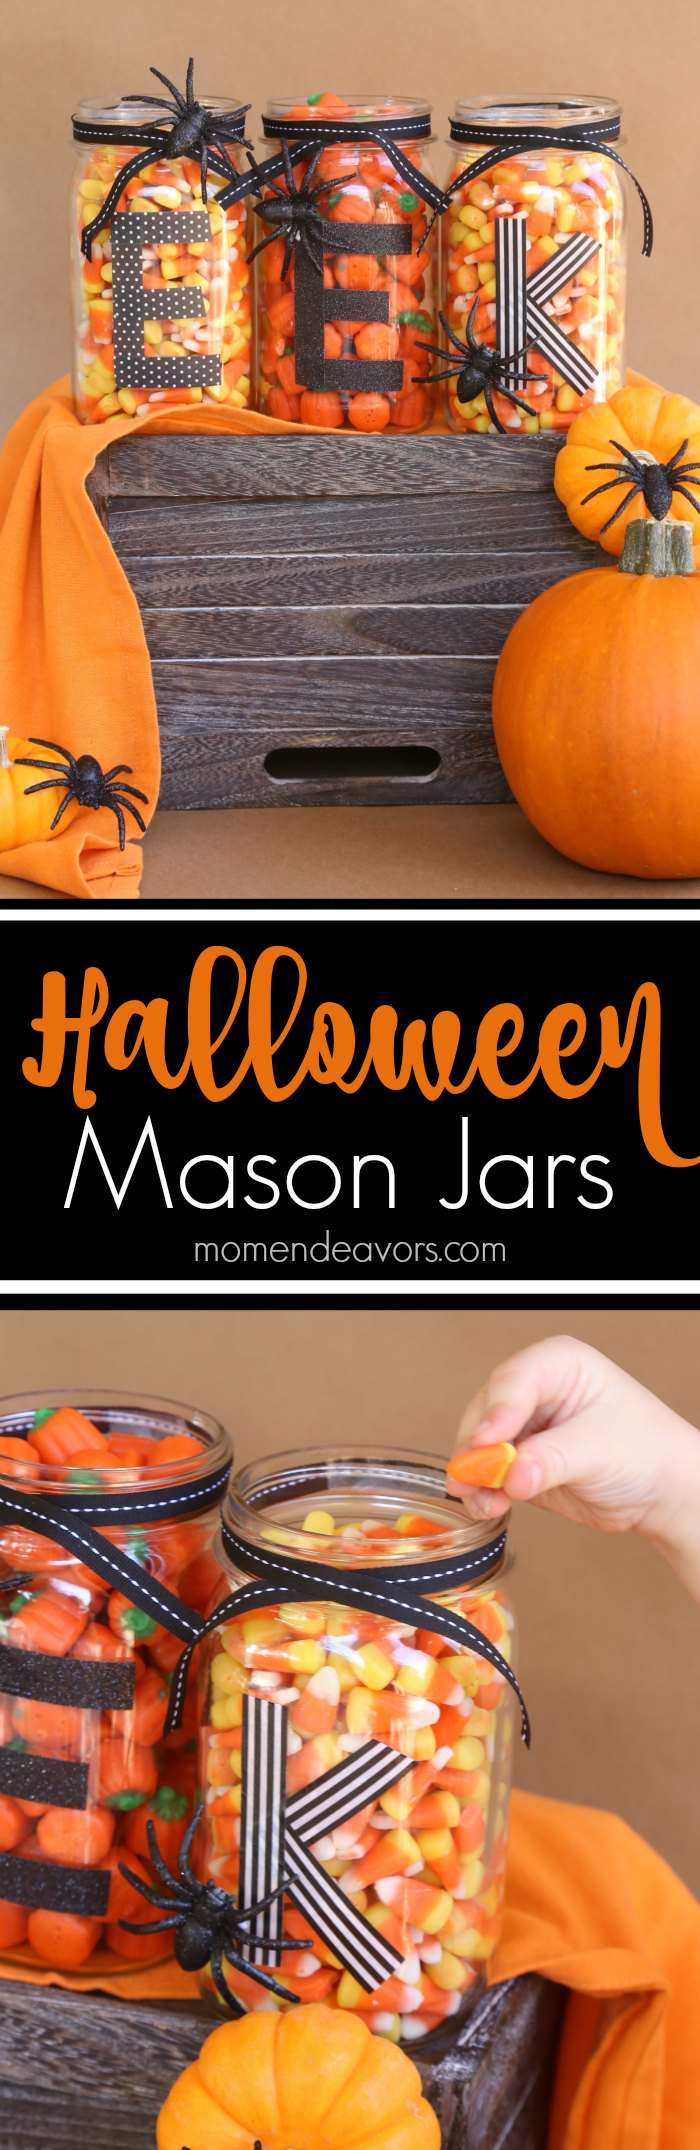 diy-halloween-mason-jars